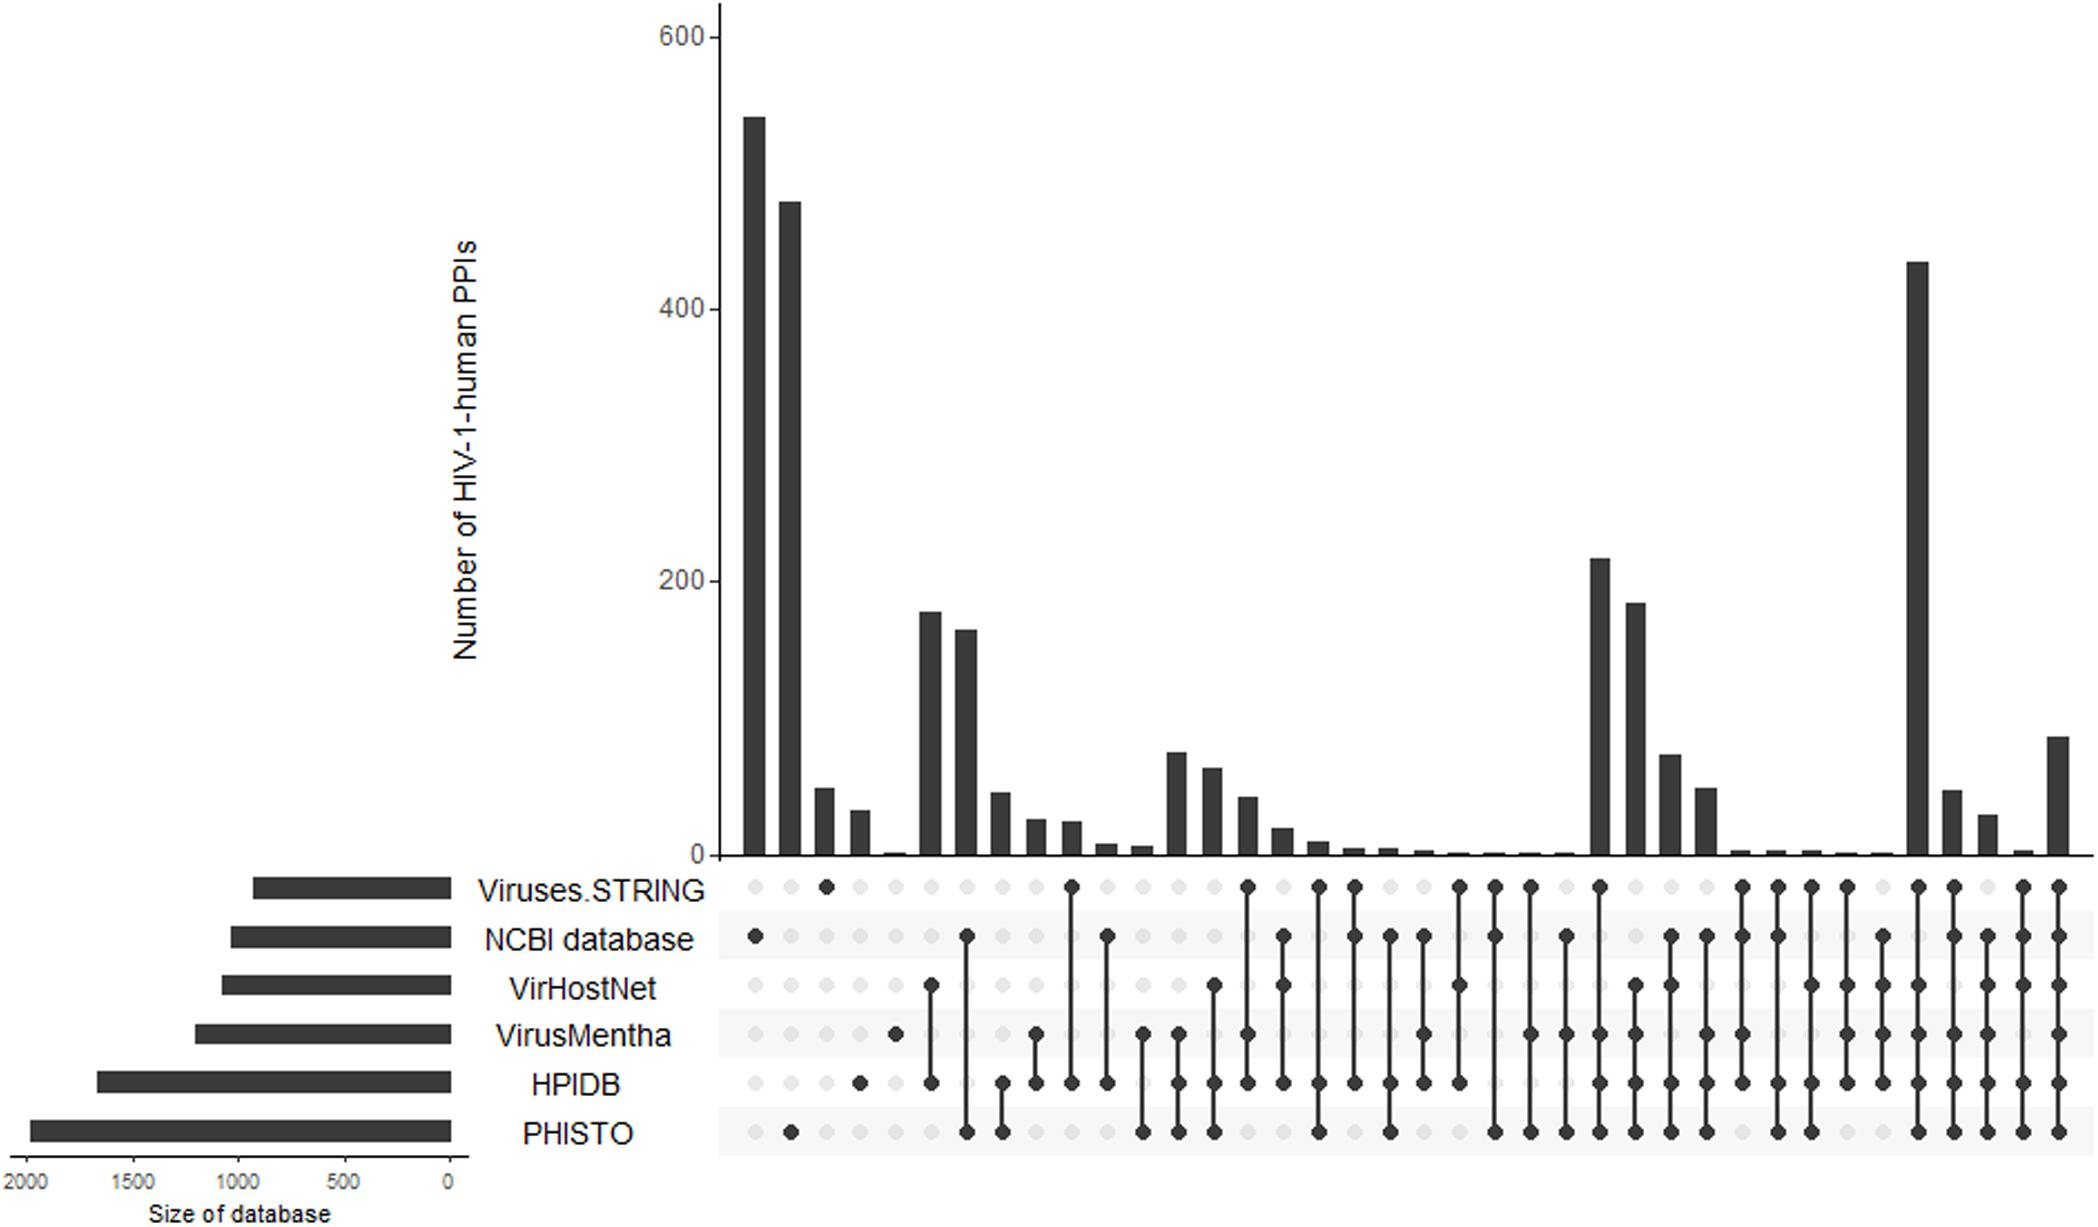 Frontiers Network Based Analysis Of Omics Data To Understand The Hiv Host Interaction Microbiology